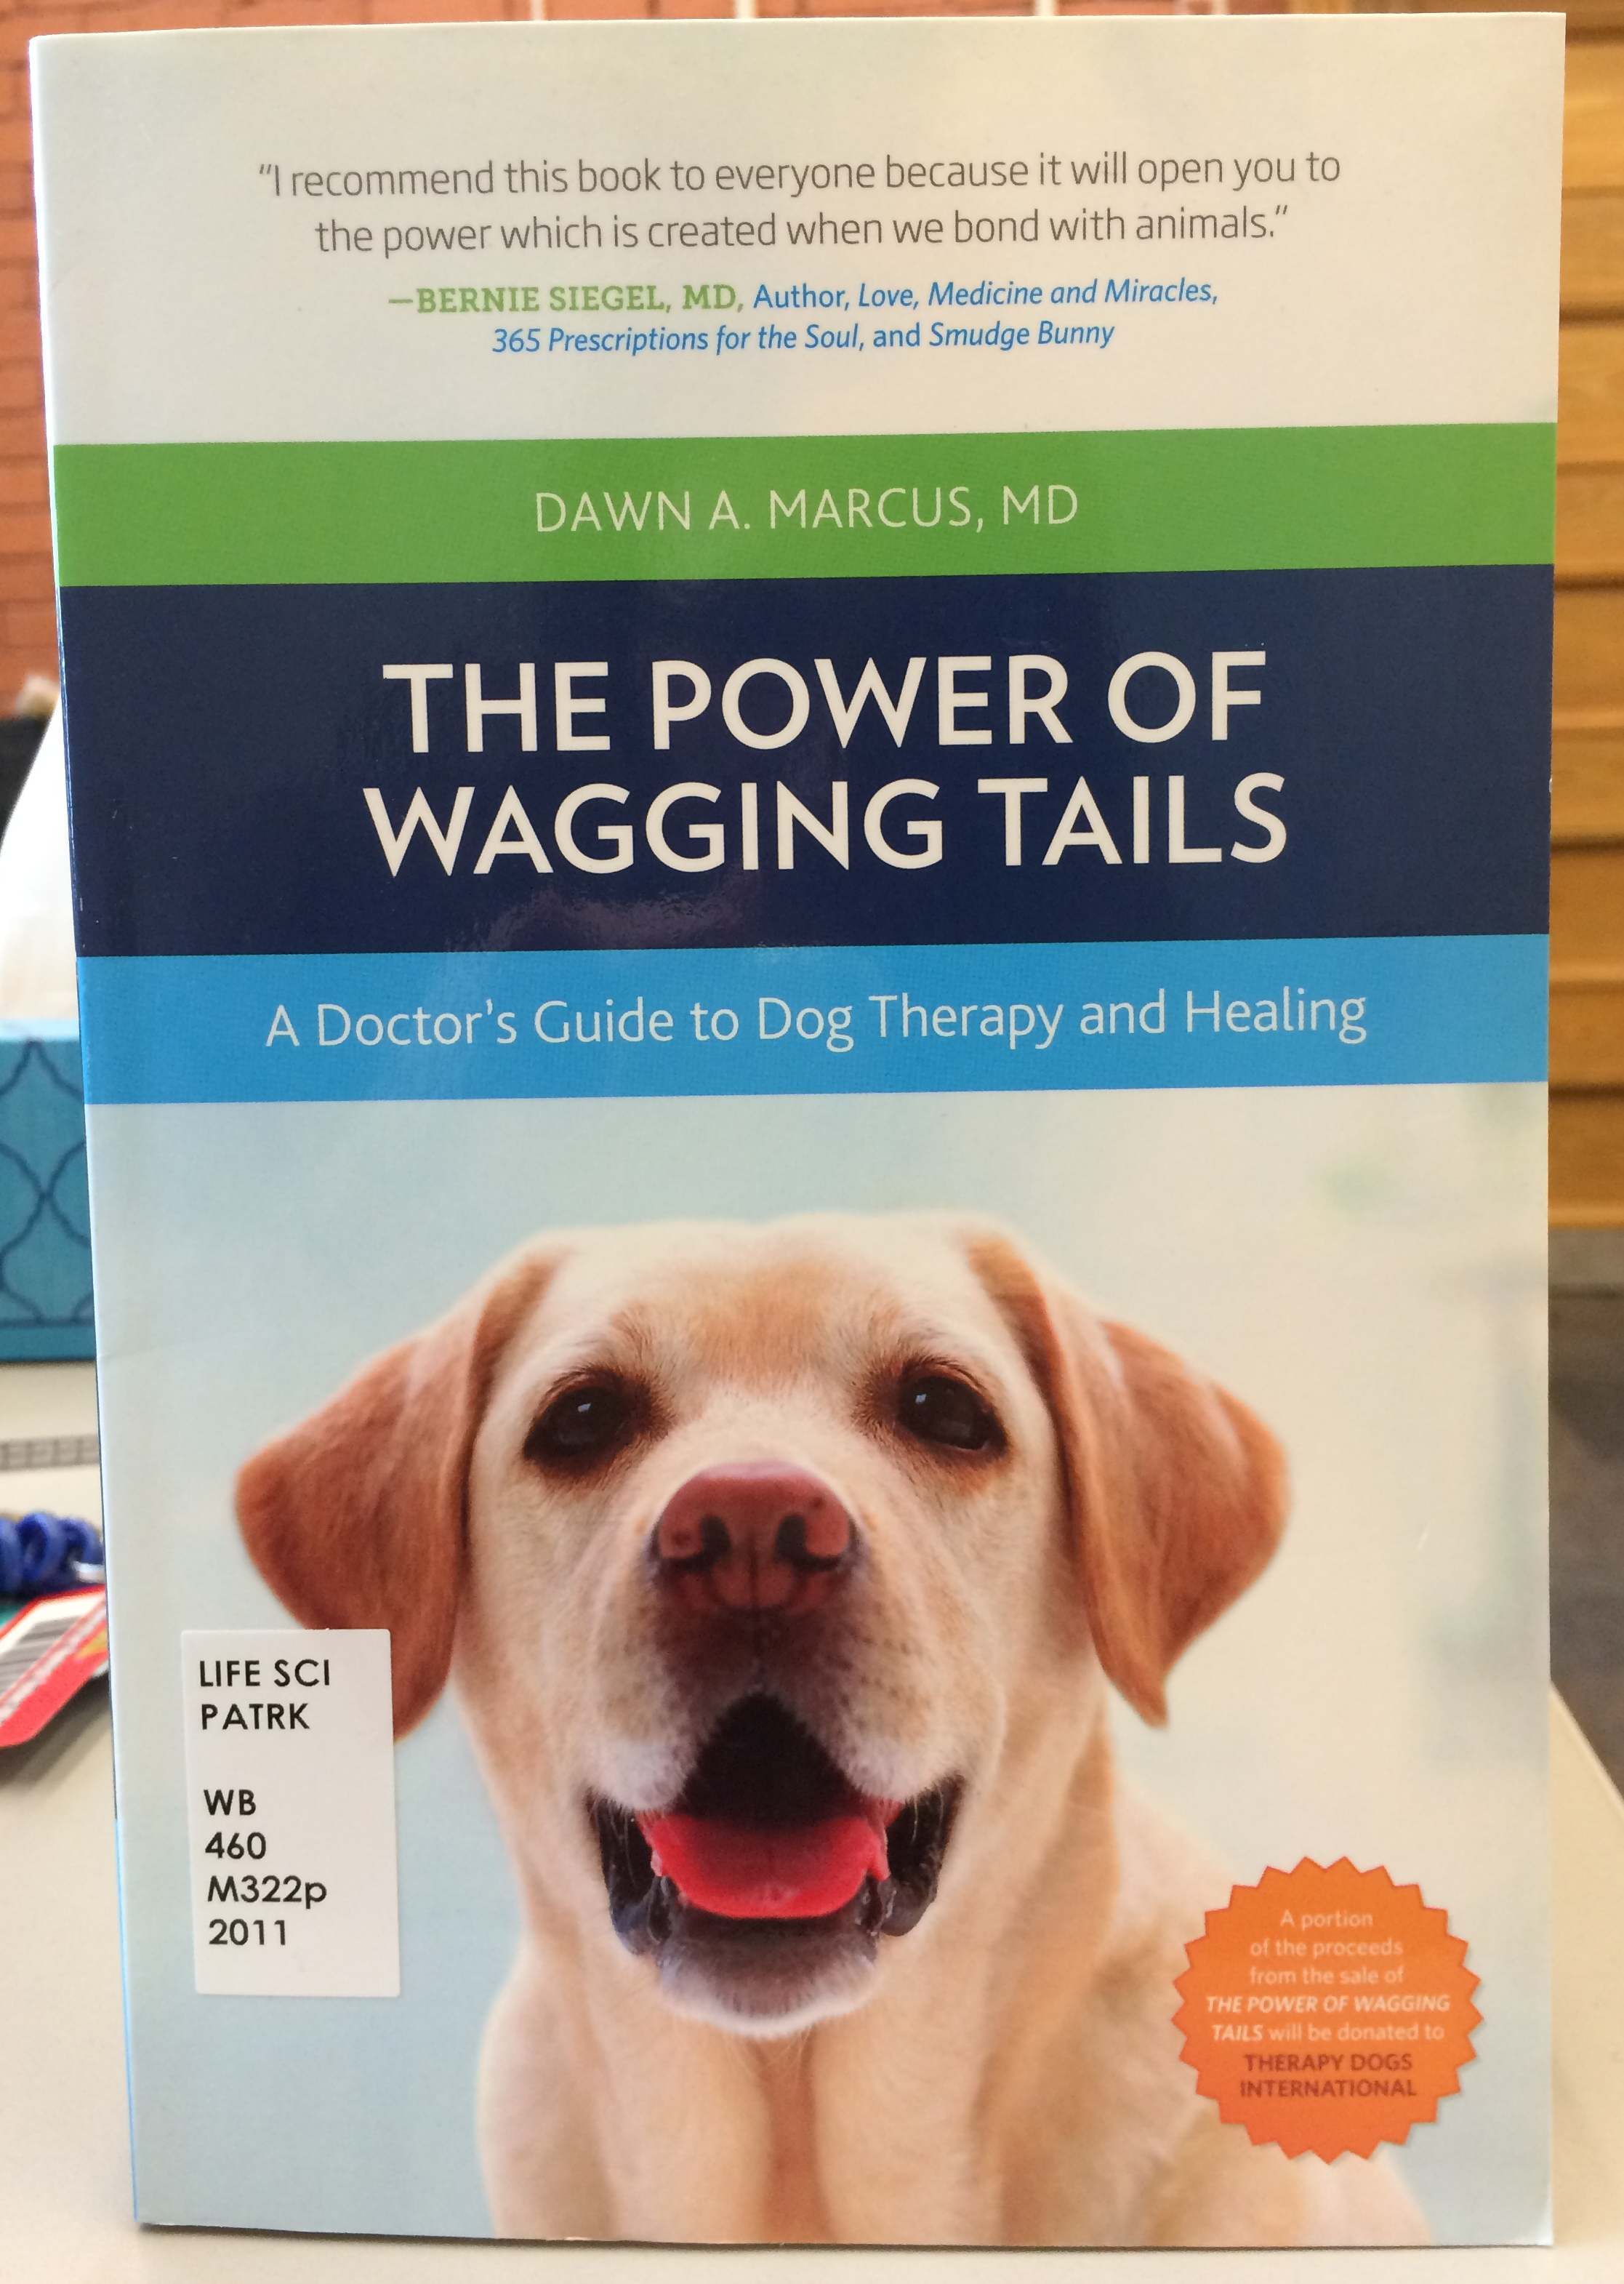 The Power of Wagging Tails: A Doctors Guide to Dog Therapy and Healing